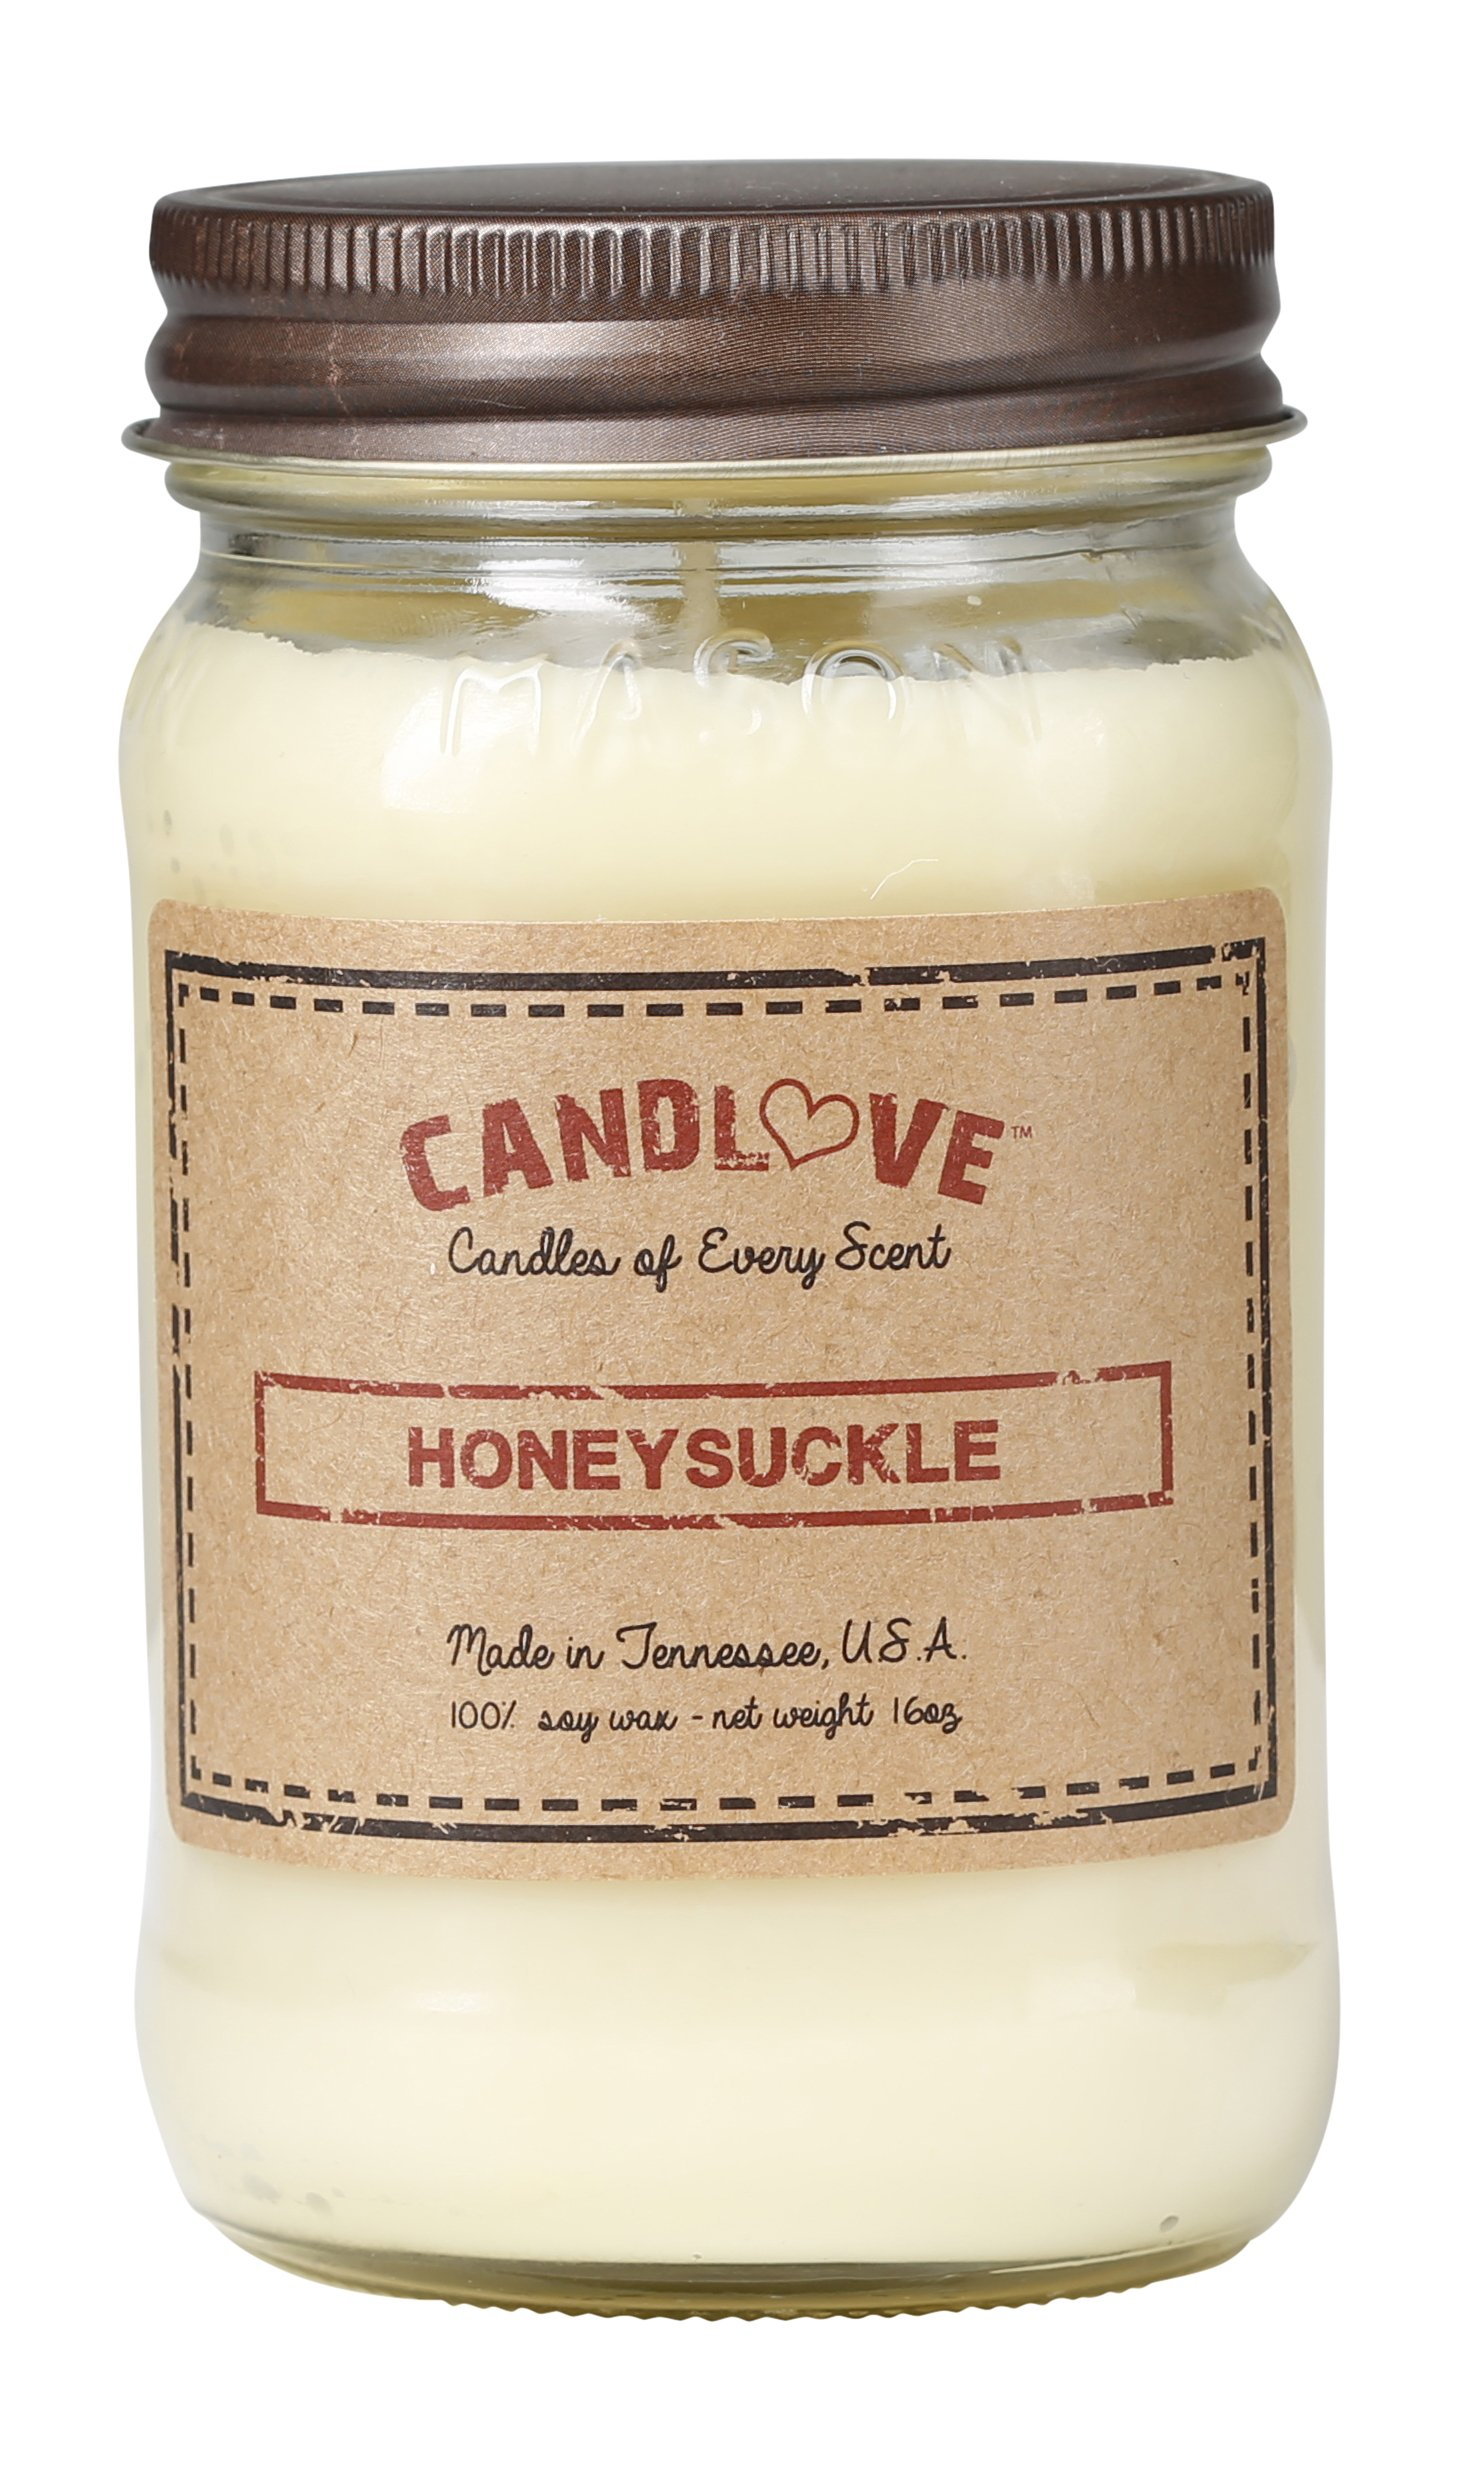 CANDLOVE Honeysuckle Scented 16oz Mason Jar Candle 100% Soy Made in The USA - Bring your senses alive with the intoxicating and sweet smell of honeysuckle. ECO-FRIENDLY, SOY PRODUCT. Completely renewable, these candles are made using 100% soy wax - a vegetable wax made from the oil of soybeans. In addition to sustainability, these eco-friendly soy candles will burn cleanly and slowly. Made in USA. HUGE VARIETY OF SCENTS. To accommodate everyone's needs, Candlelove Candles are made in almost every scent imaginable. With so many options to choose from - floral, food, aromatic, novelty, fruity and funny scents - you're sure to find just the right one. - living-room-decor, living-room, candles - 81Vlfw3AjXL -